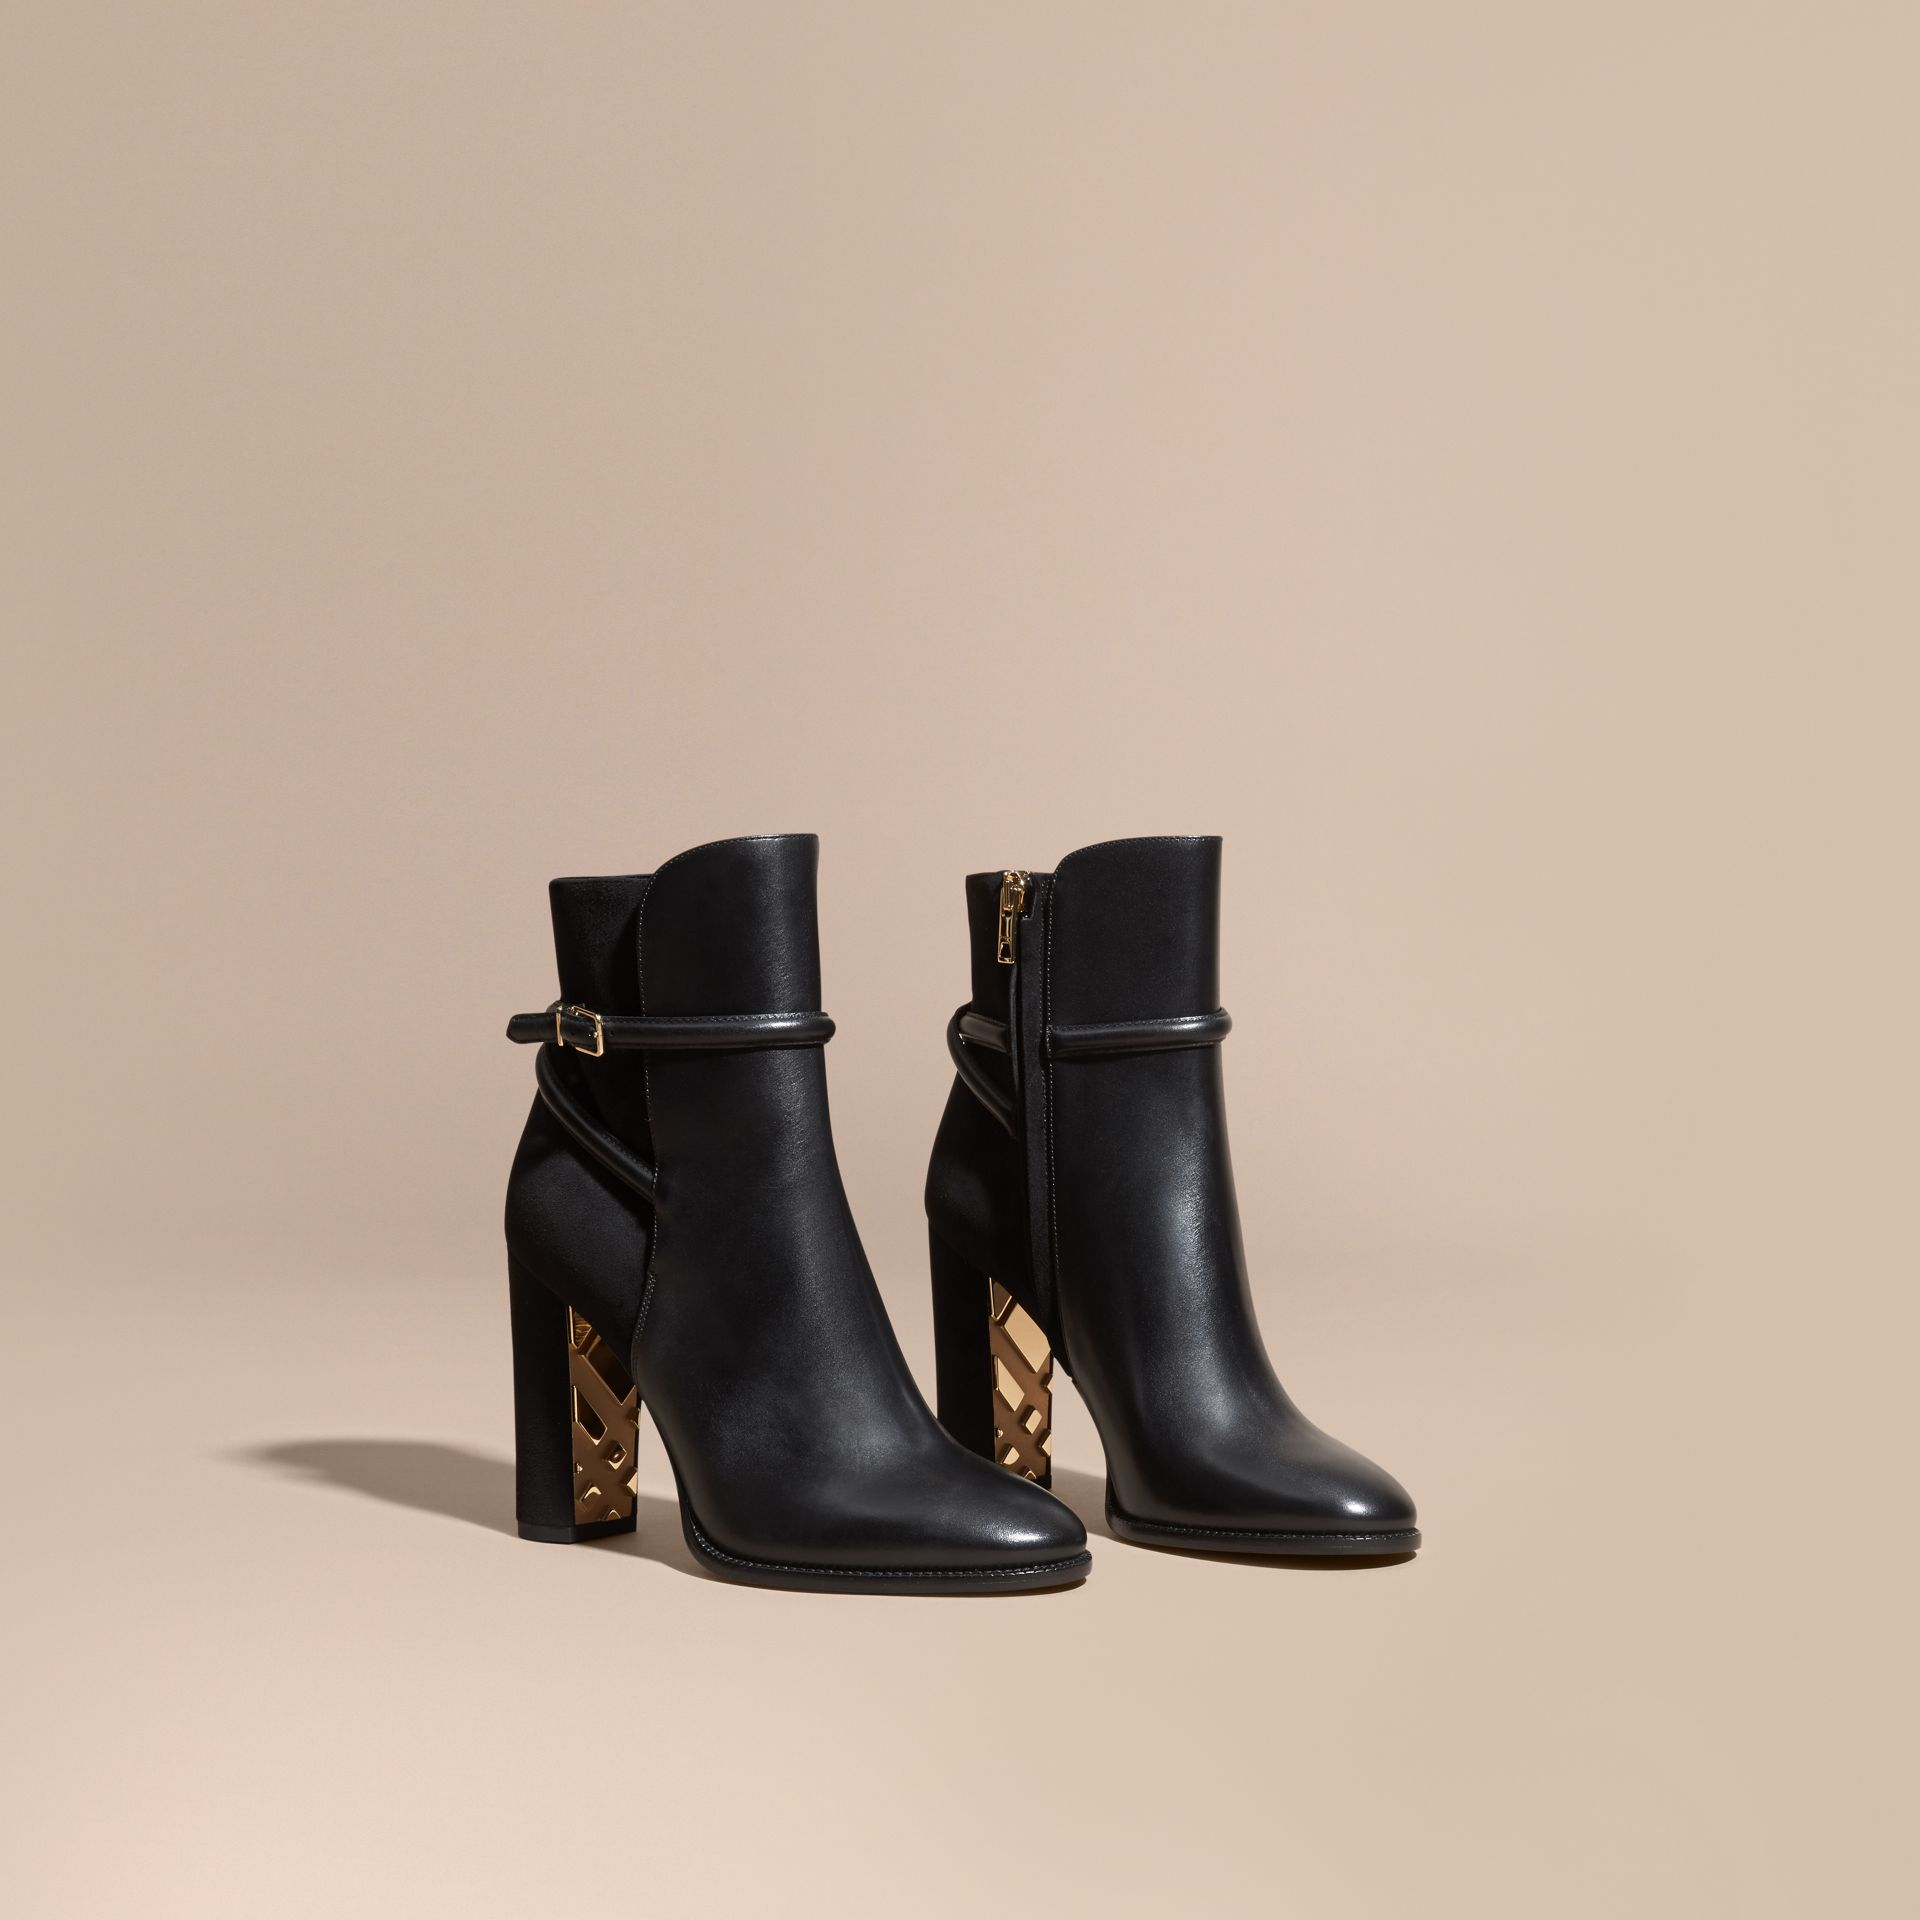 Black Strap Detail Leather and Suede Ankle Boots Black - gallery image 1